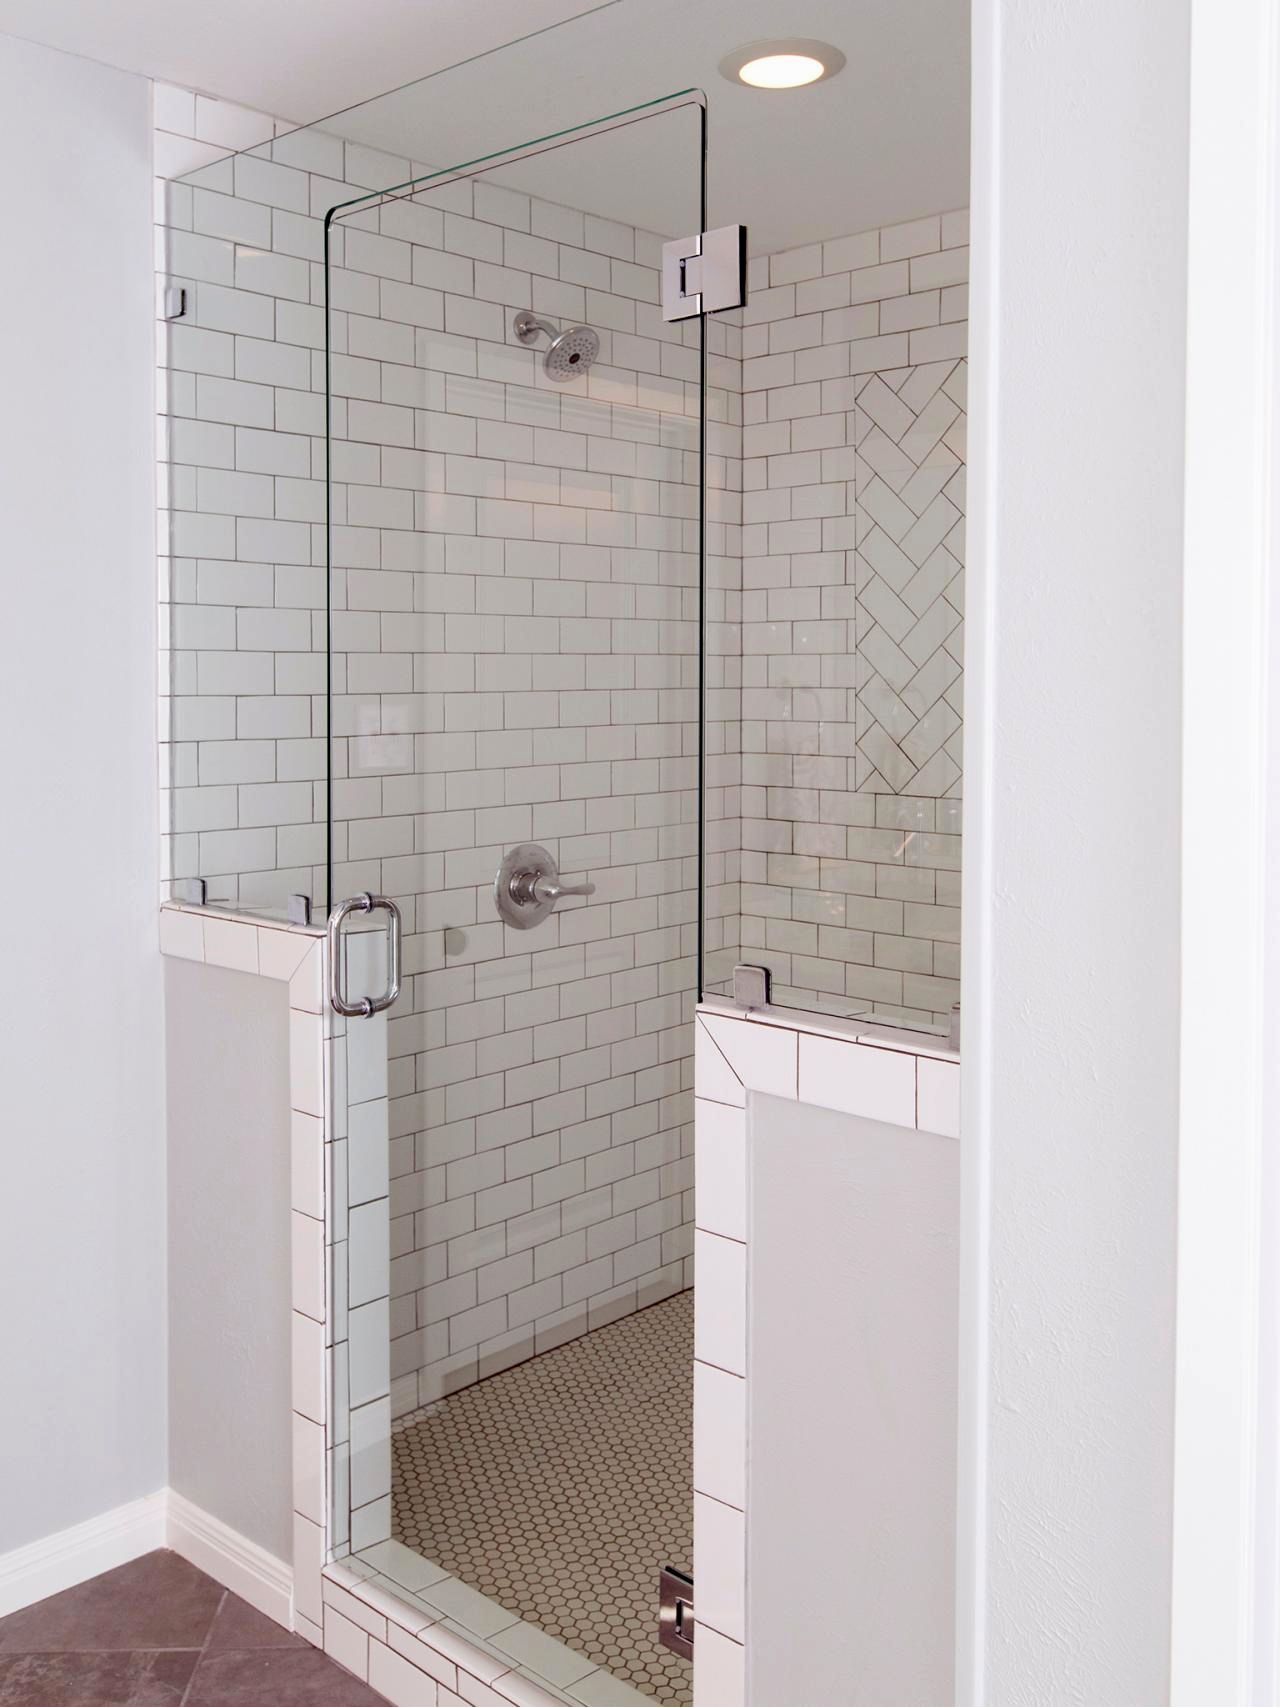 fresh black and white bathroom tile pattern-Best Of Black and White Bathroom Tile Inspiration